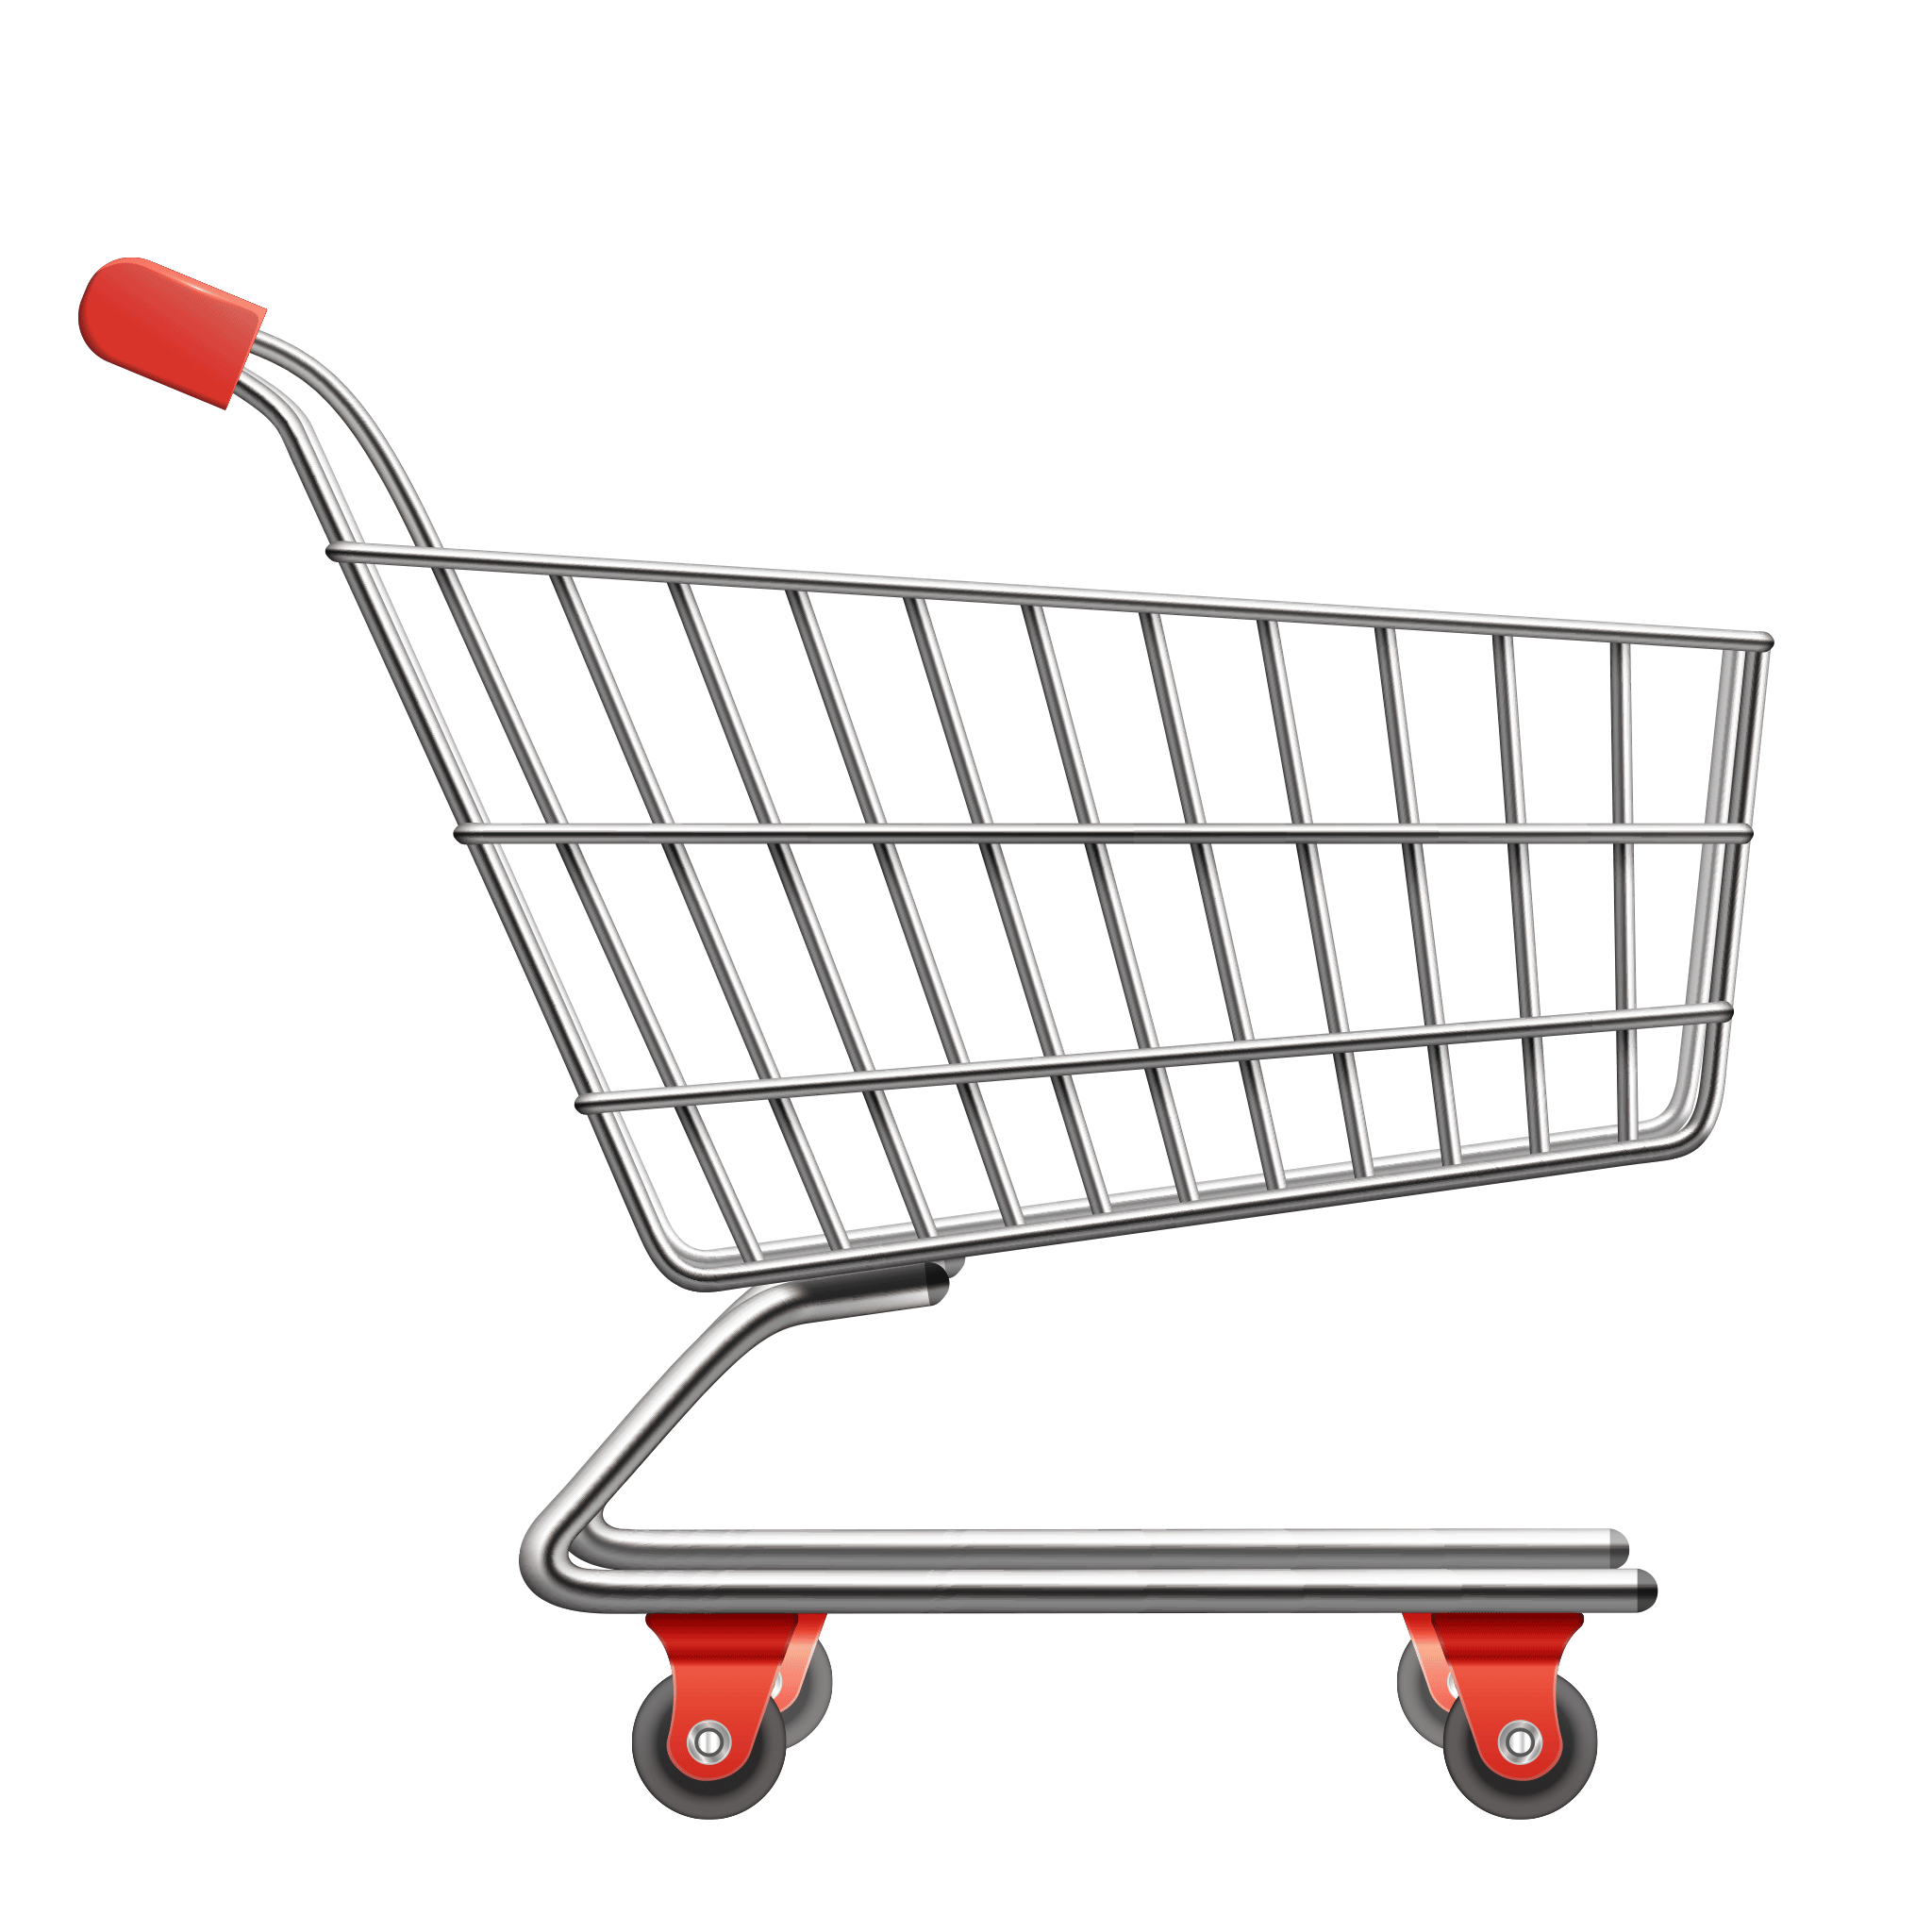 shopping cart png image download pngm #20357